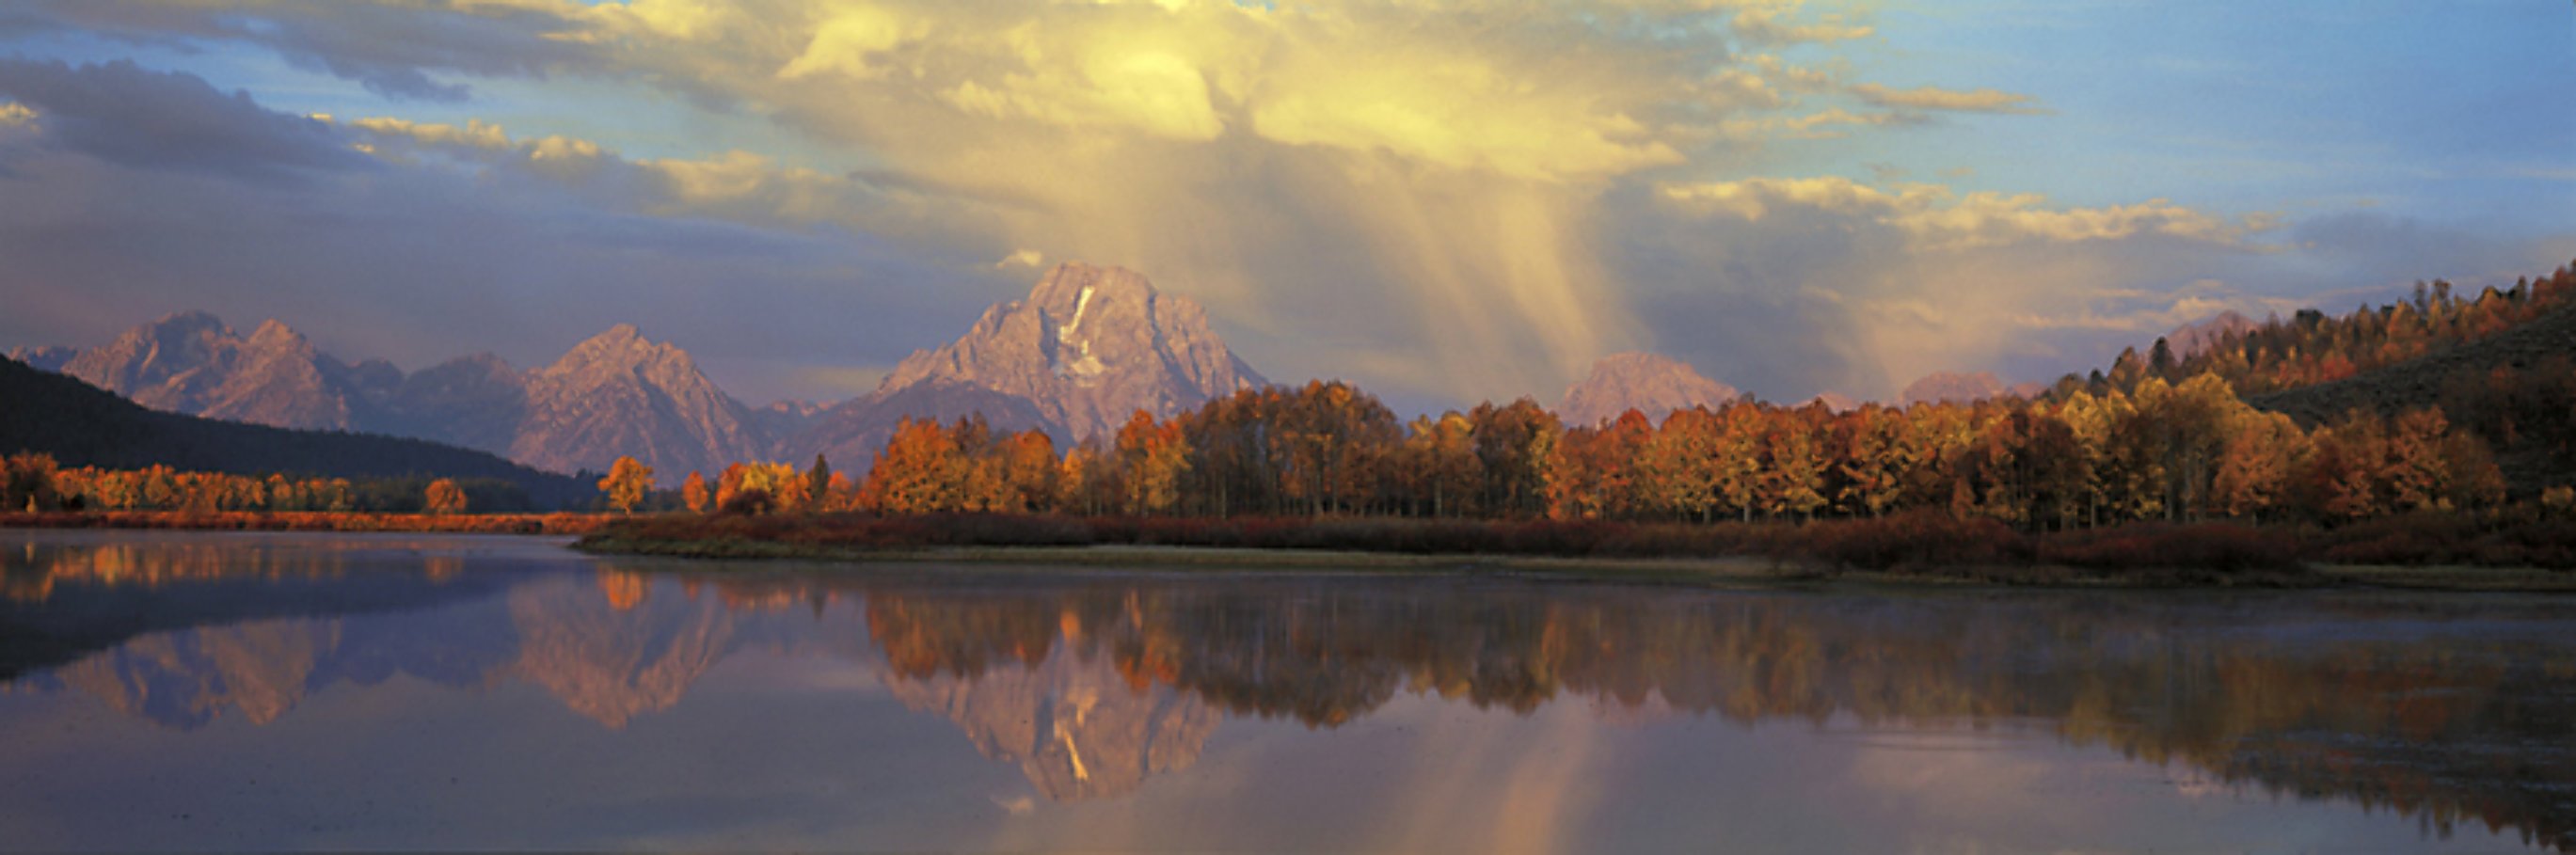 September Showers, Oxbow Bend  - Super Huge Panorama by Thomas Mangelsen